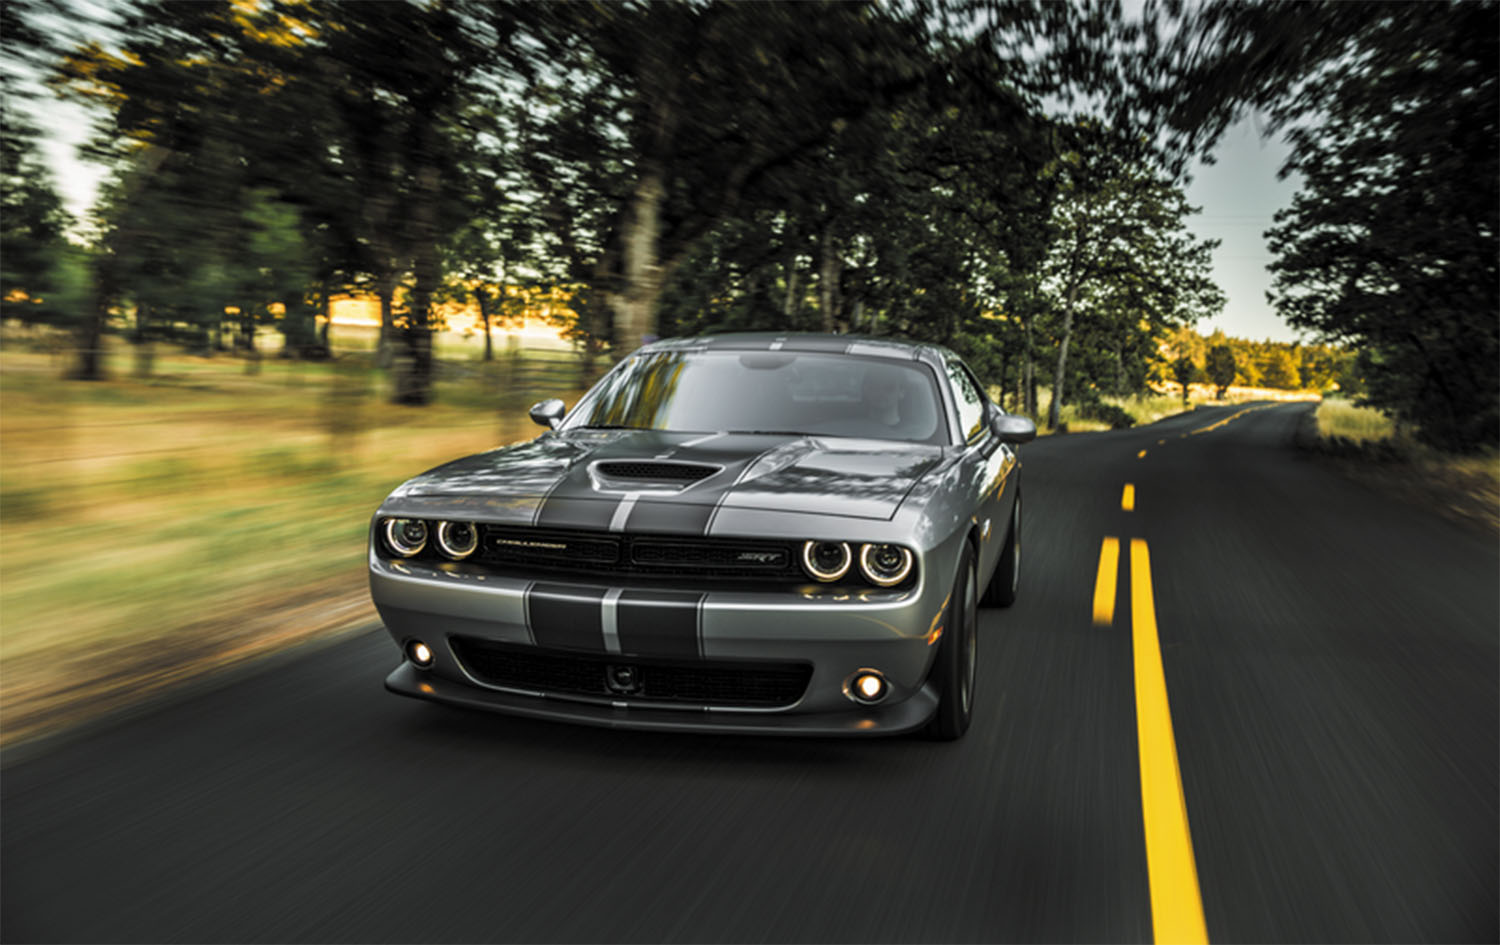 Dodge Repair and Maintenance in Everett, WA